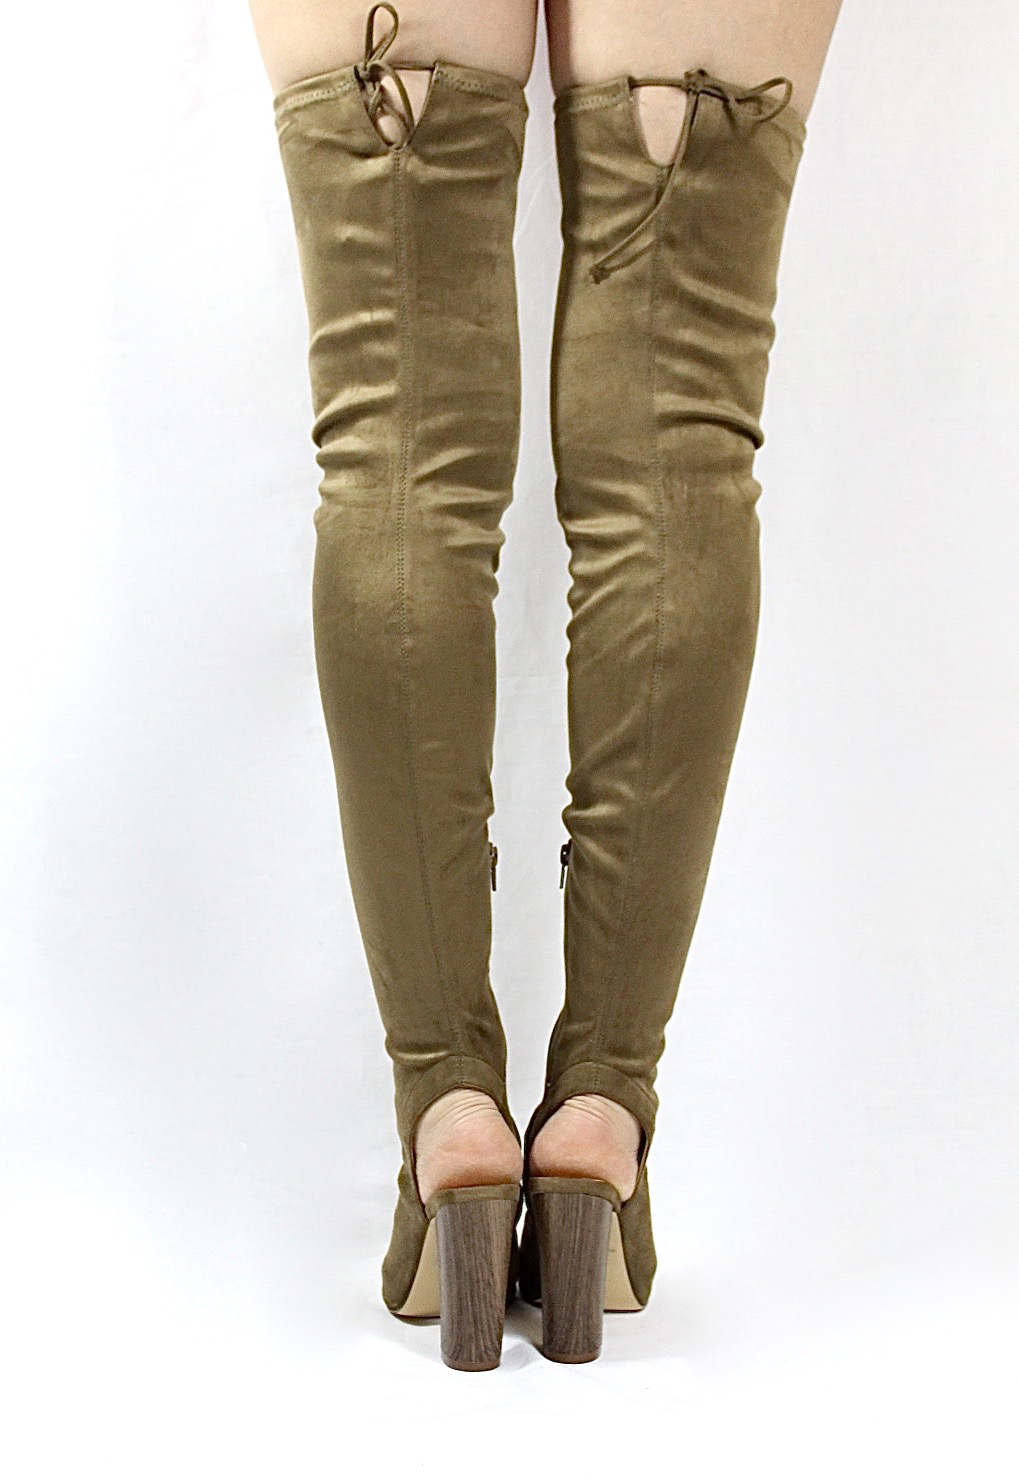 Liliana Sage-44 Olive Over the Knee Thigh High Open Toe Boots-4280